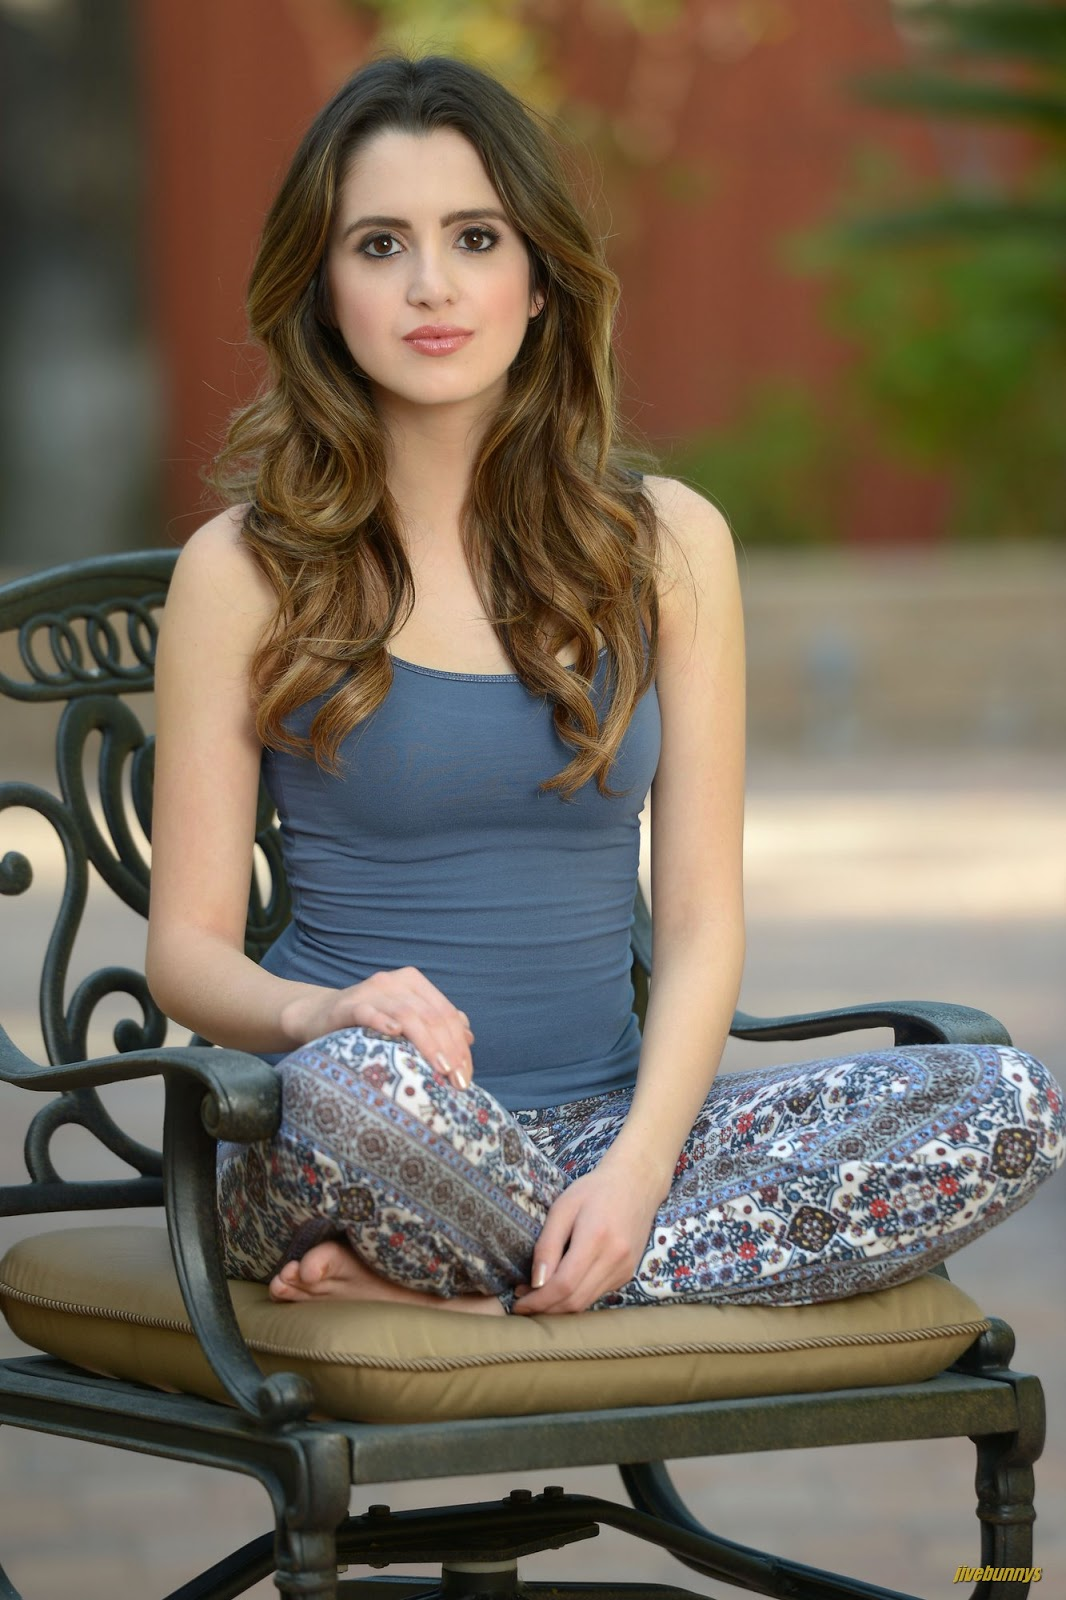 TRACI: Sexy pictures of laura marano